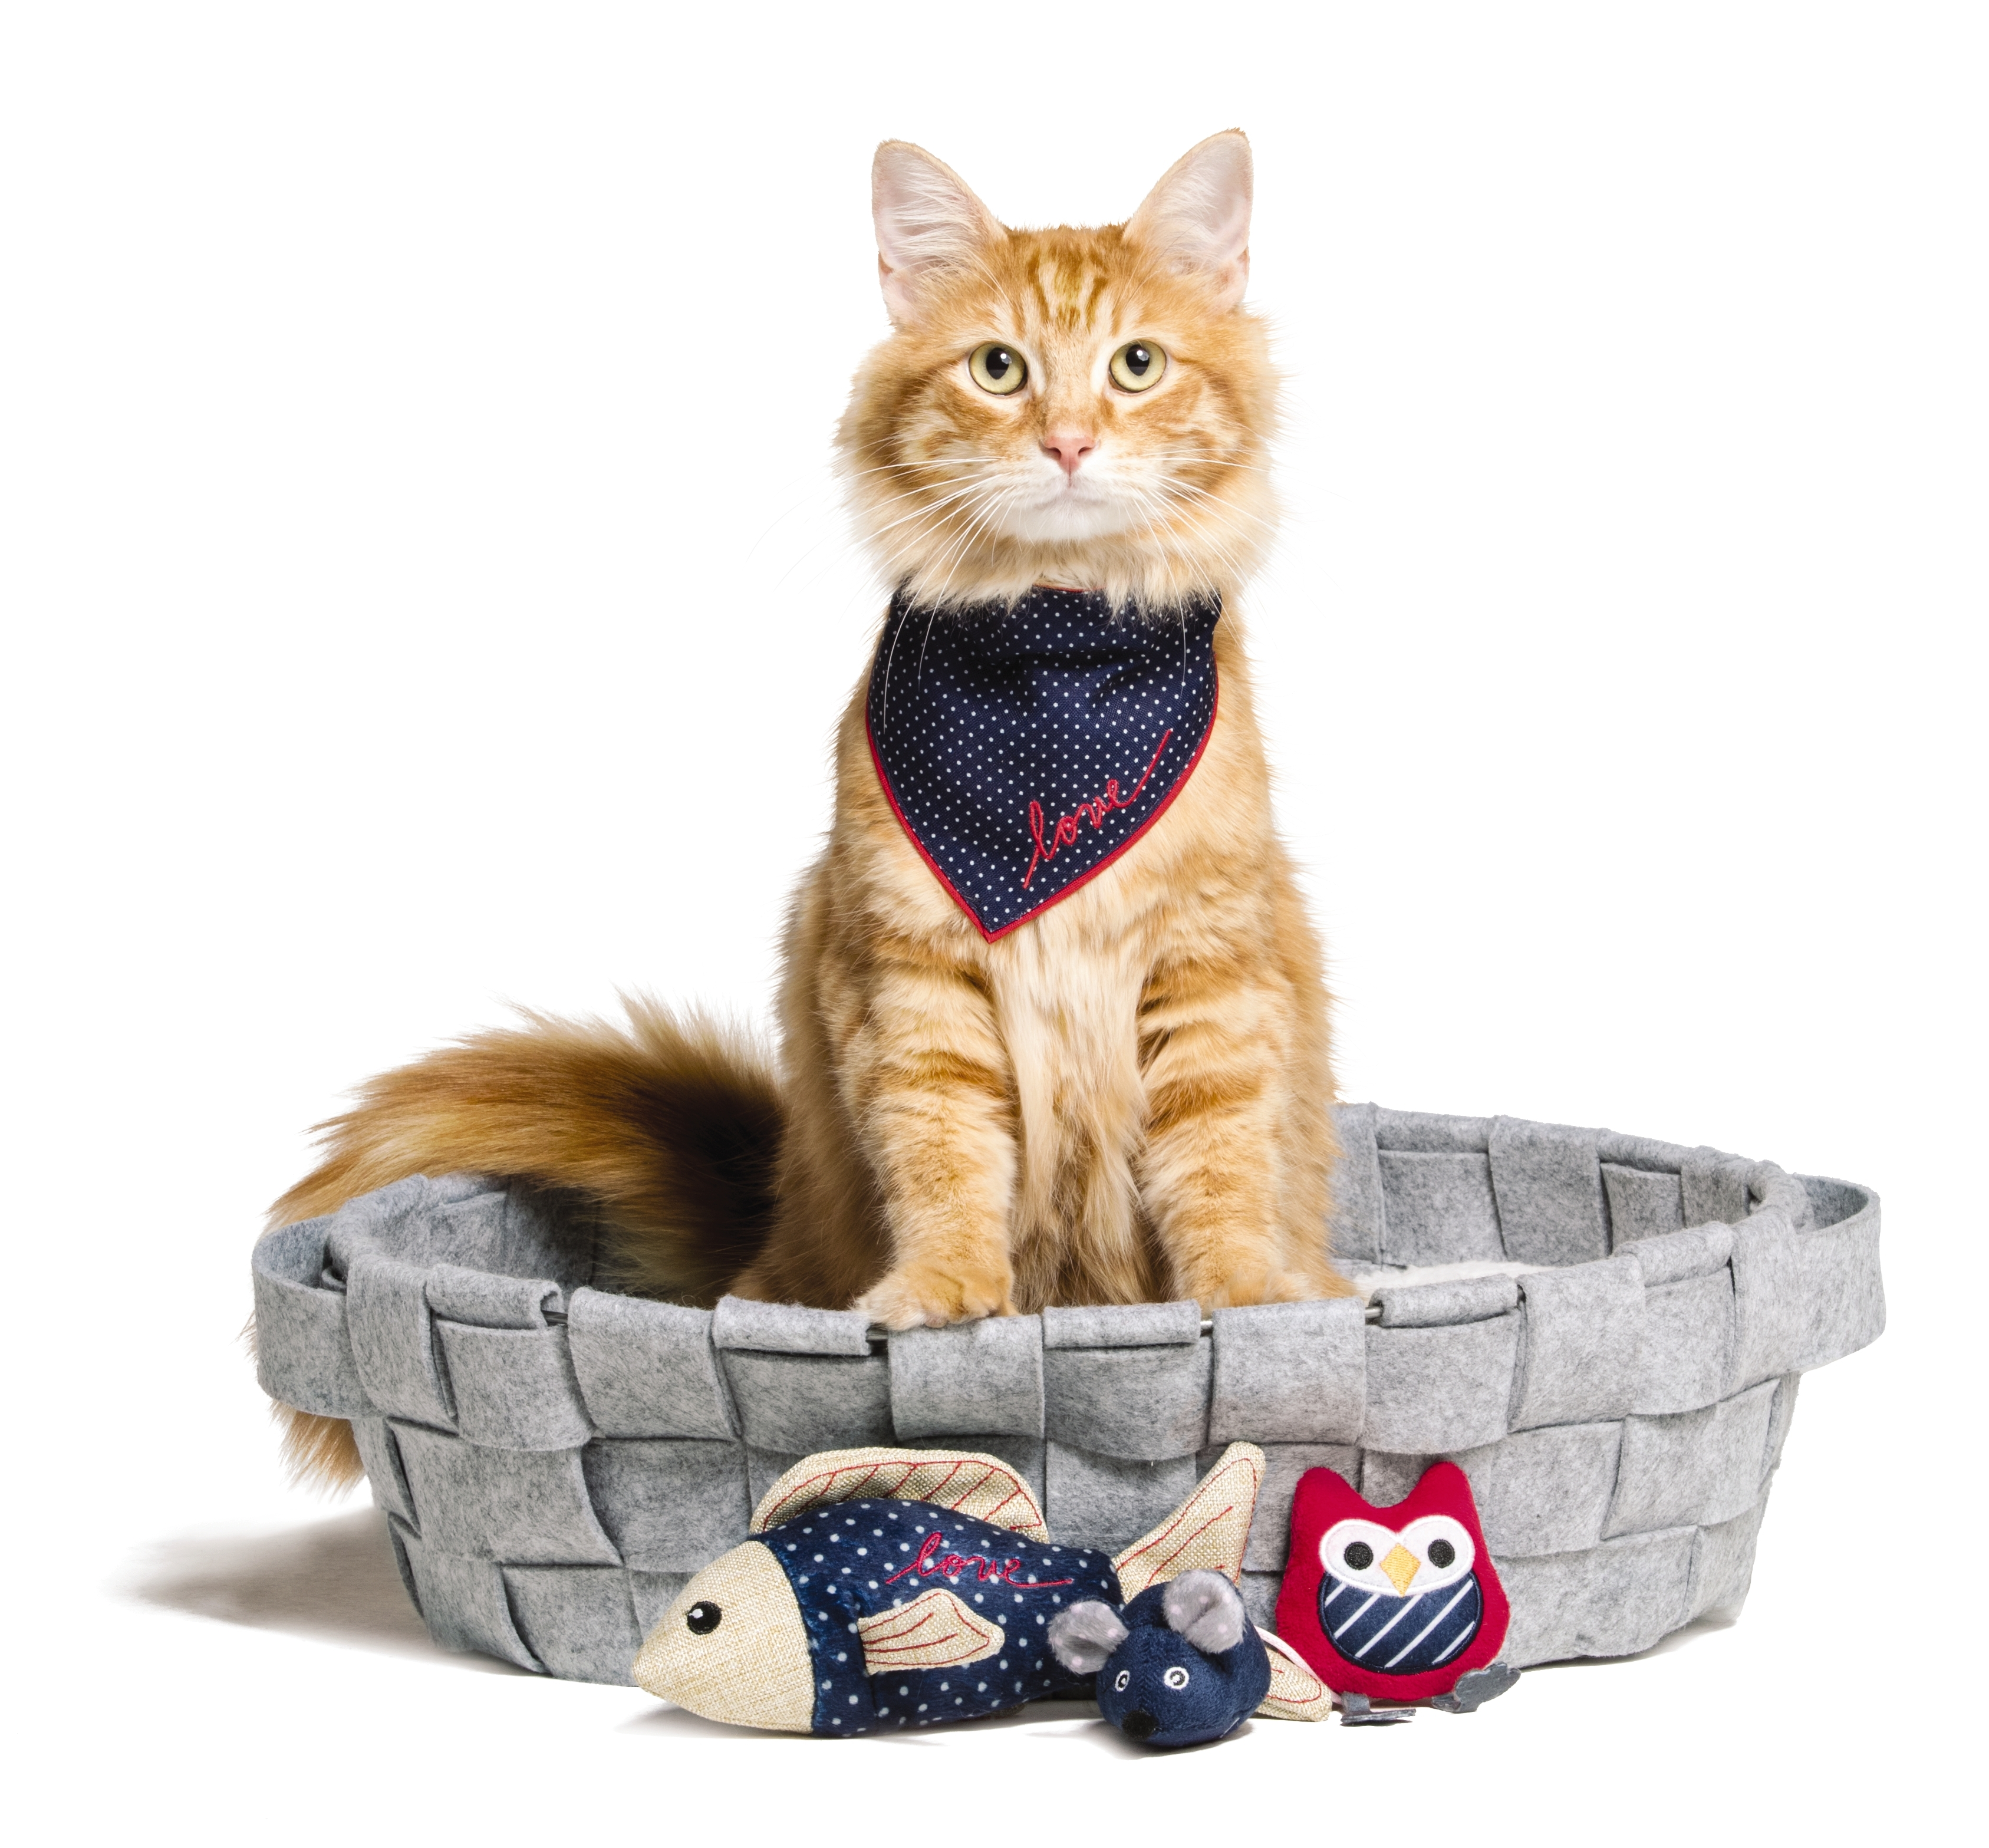 Crazy for Cats PetSmart Ellen Expand New ED Ellen DeGeneres